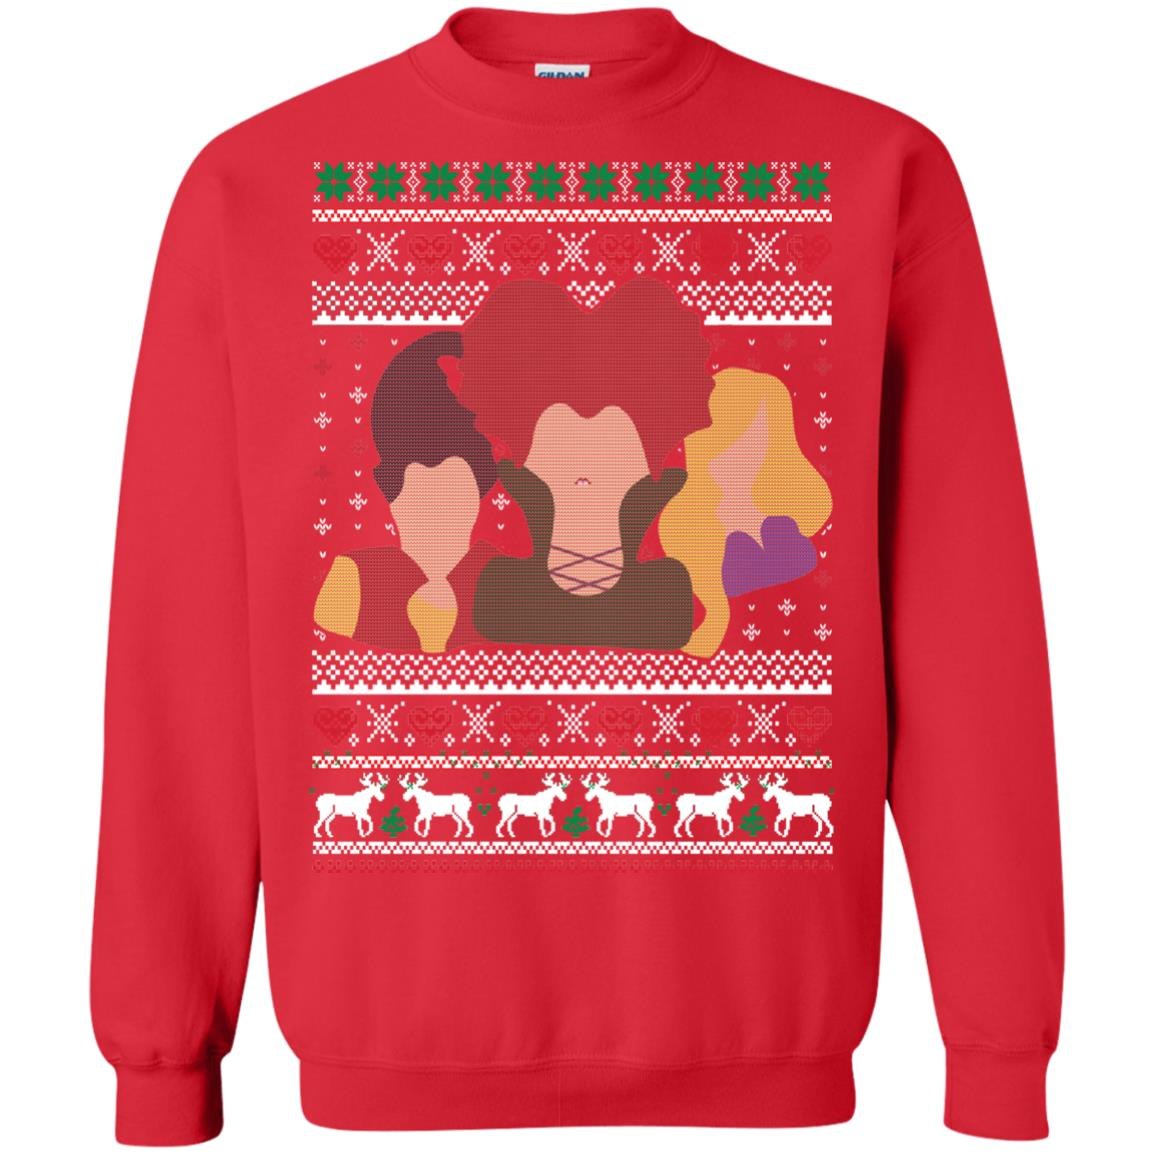 image 644px Hocus Pocus Ugly Christmas Sweater Shirt